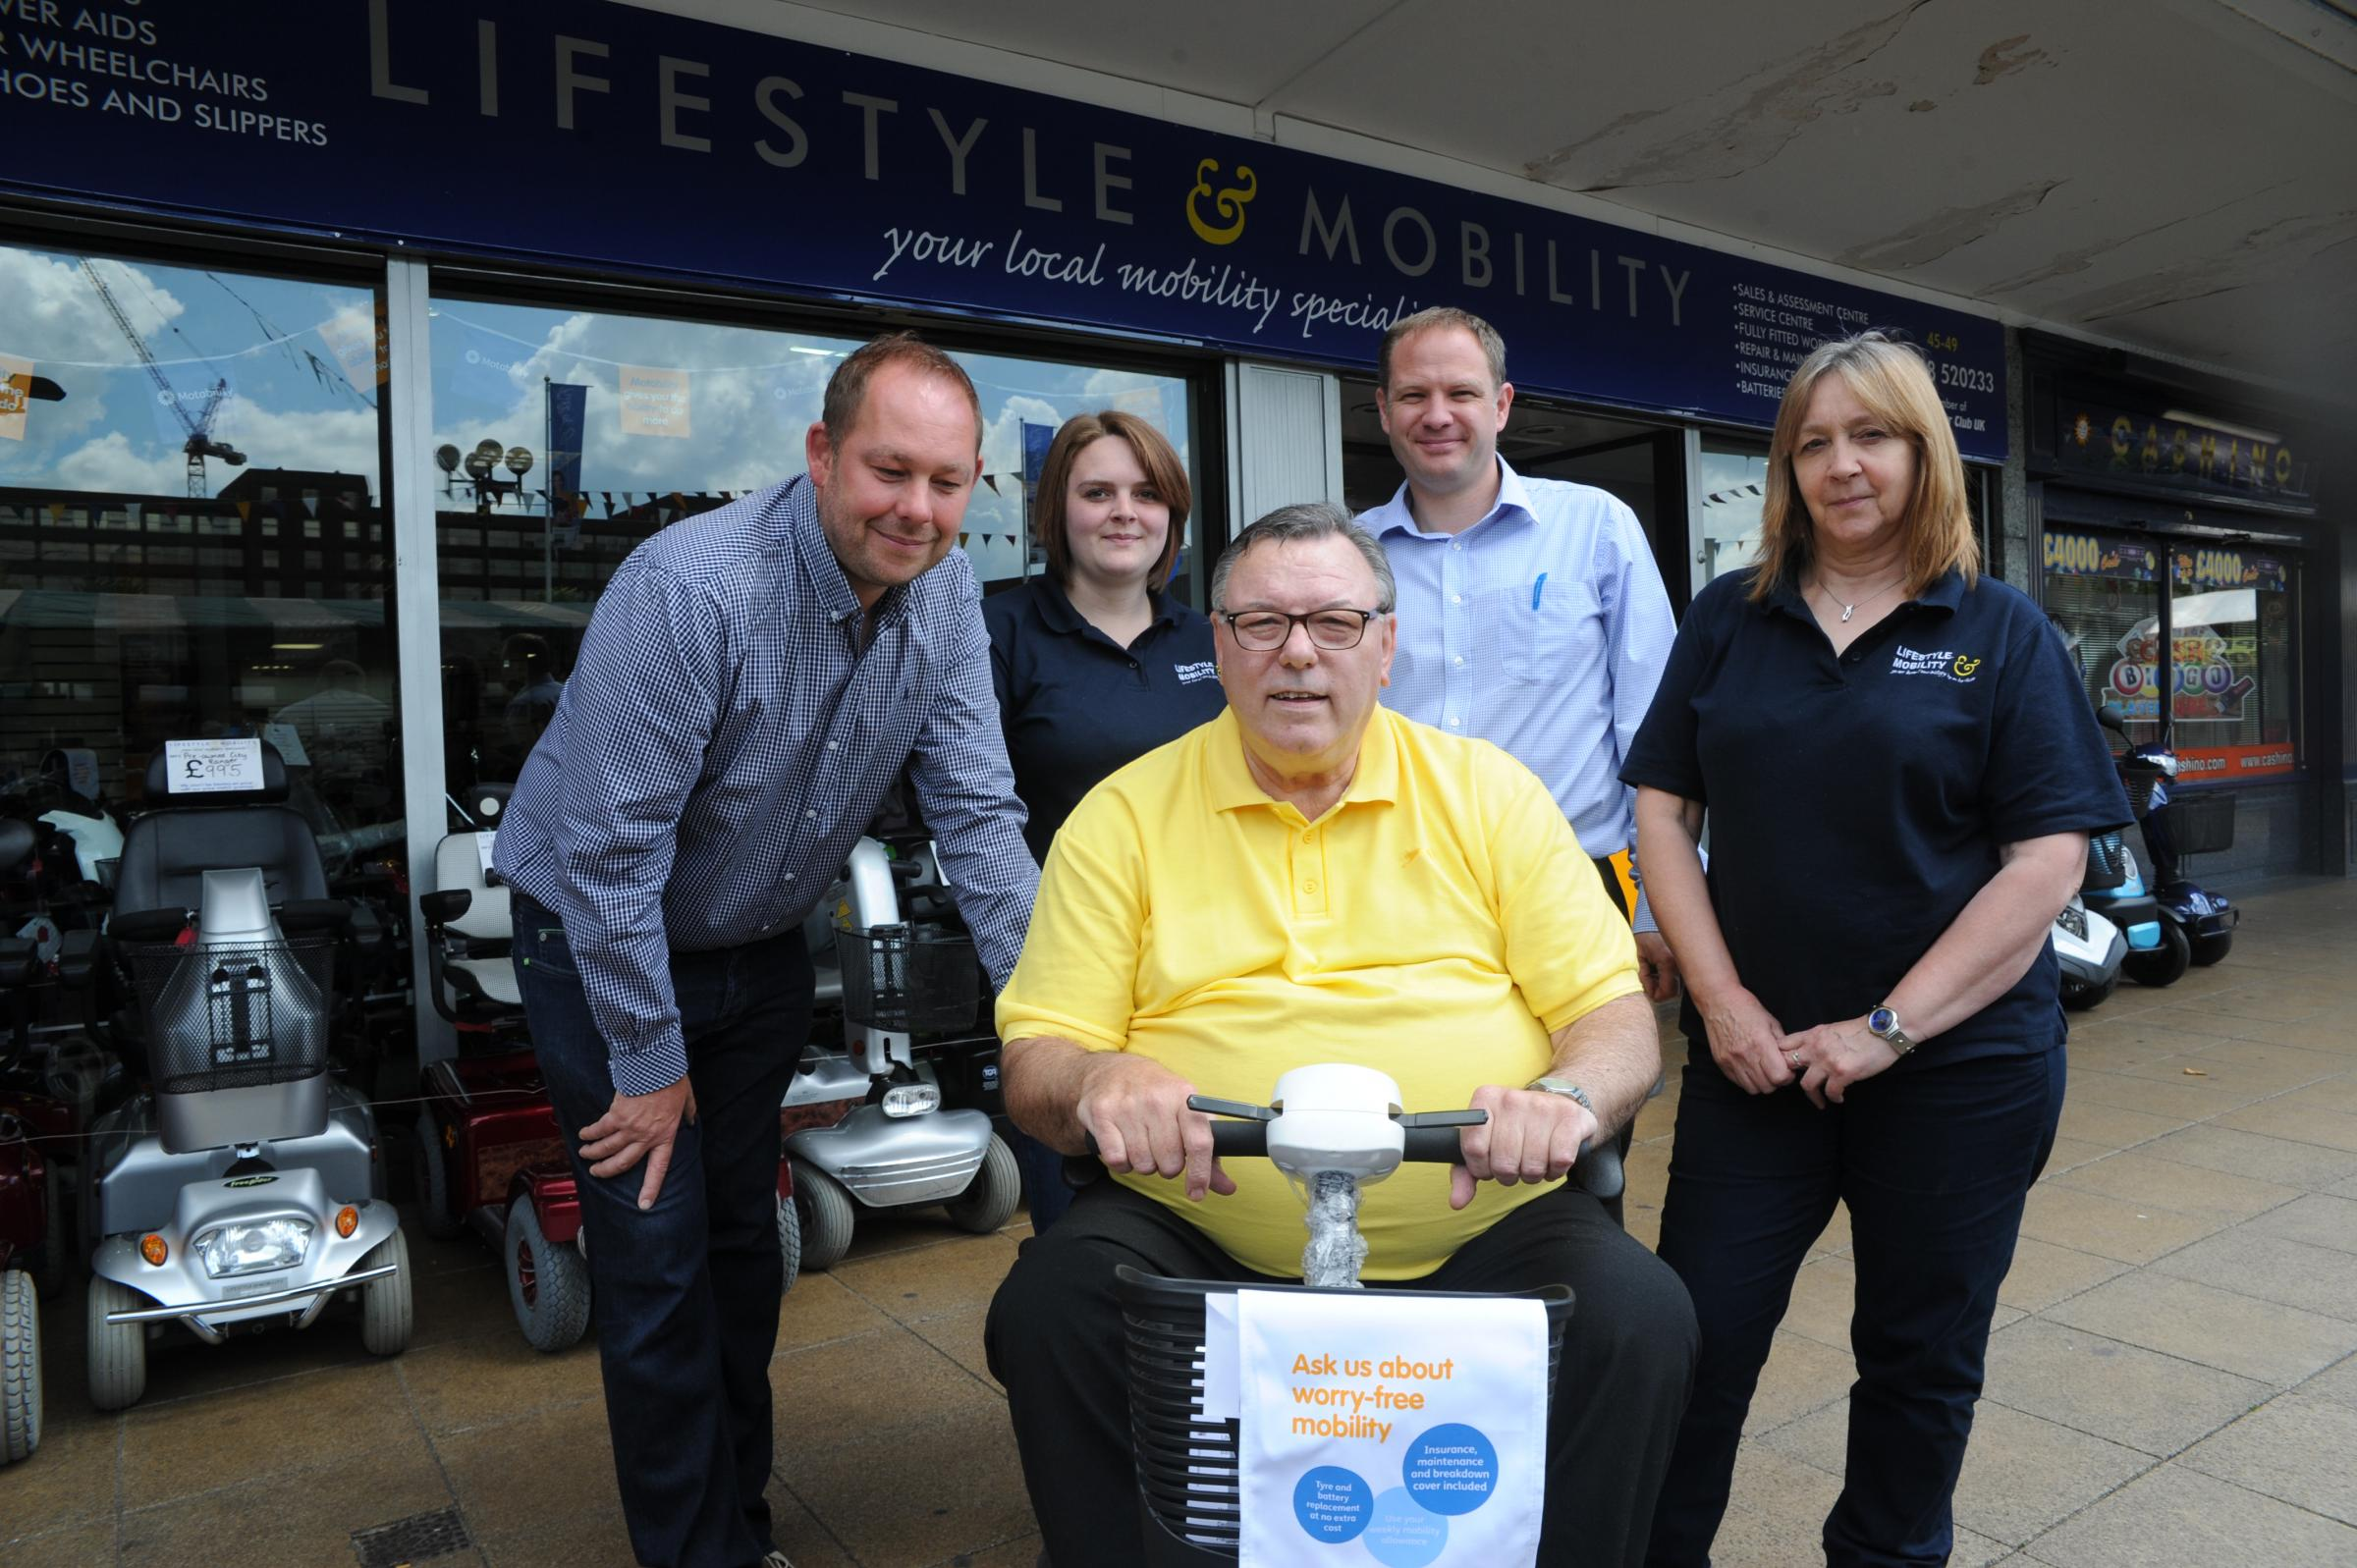 Valuable service – left to right, company director Aaron Sverdloff, sales assistant Emily Parker, customer Stan Shaw, business development manager Simon Greenway, and company secretary Beverley Packer